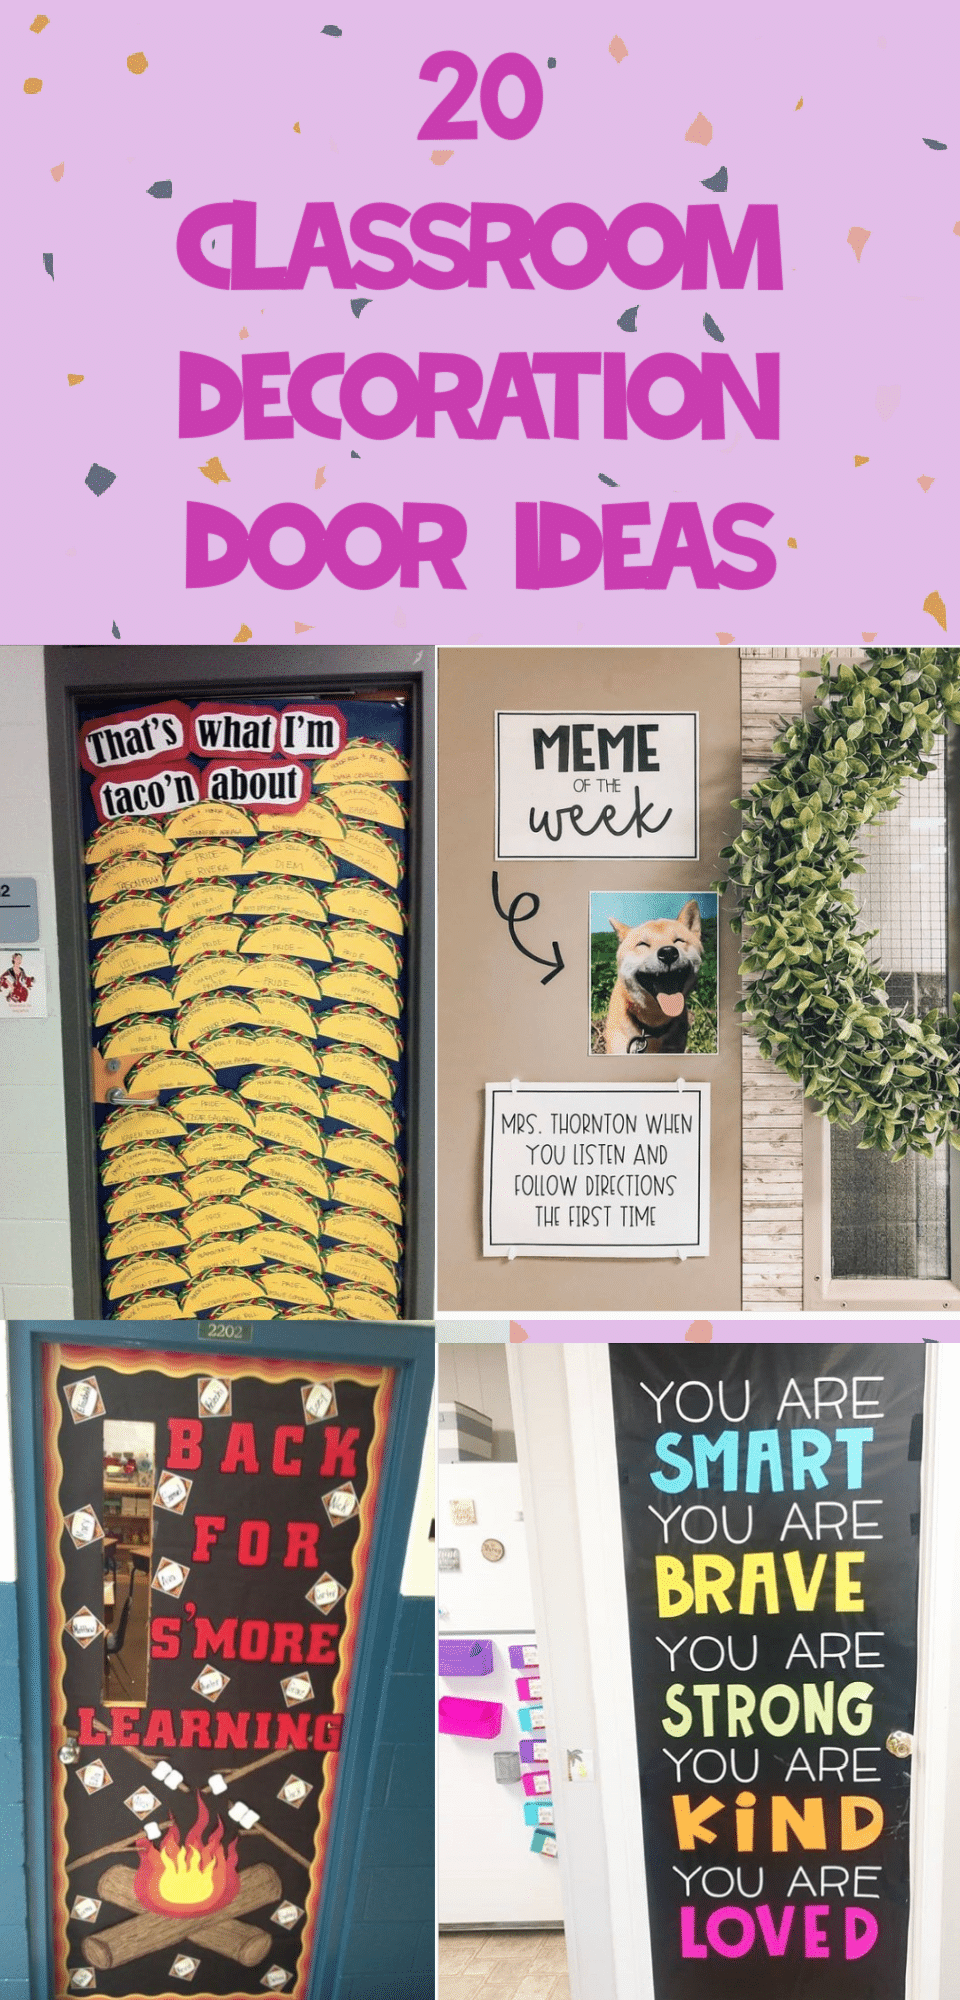 Welcome your students back to school with a fun and inviting decorated door! They will love to walk into your classroom when your door is decorated just for them. We are sharing 20 of the best classroom door ideas to help you get started! via @clarkscondensed